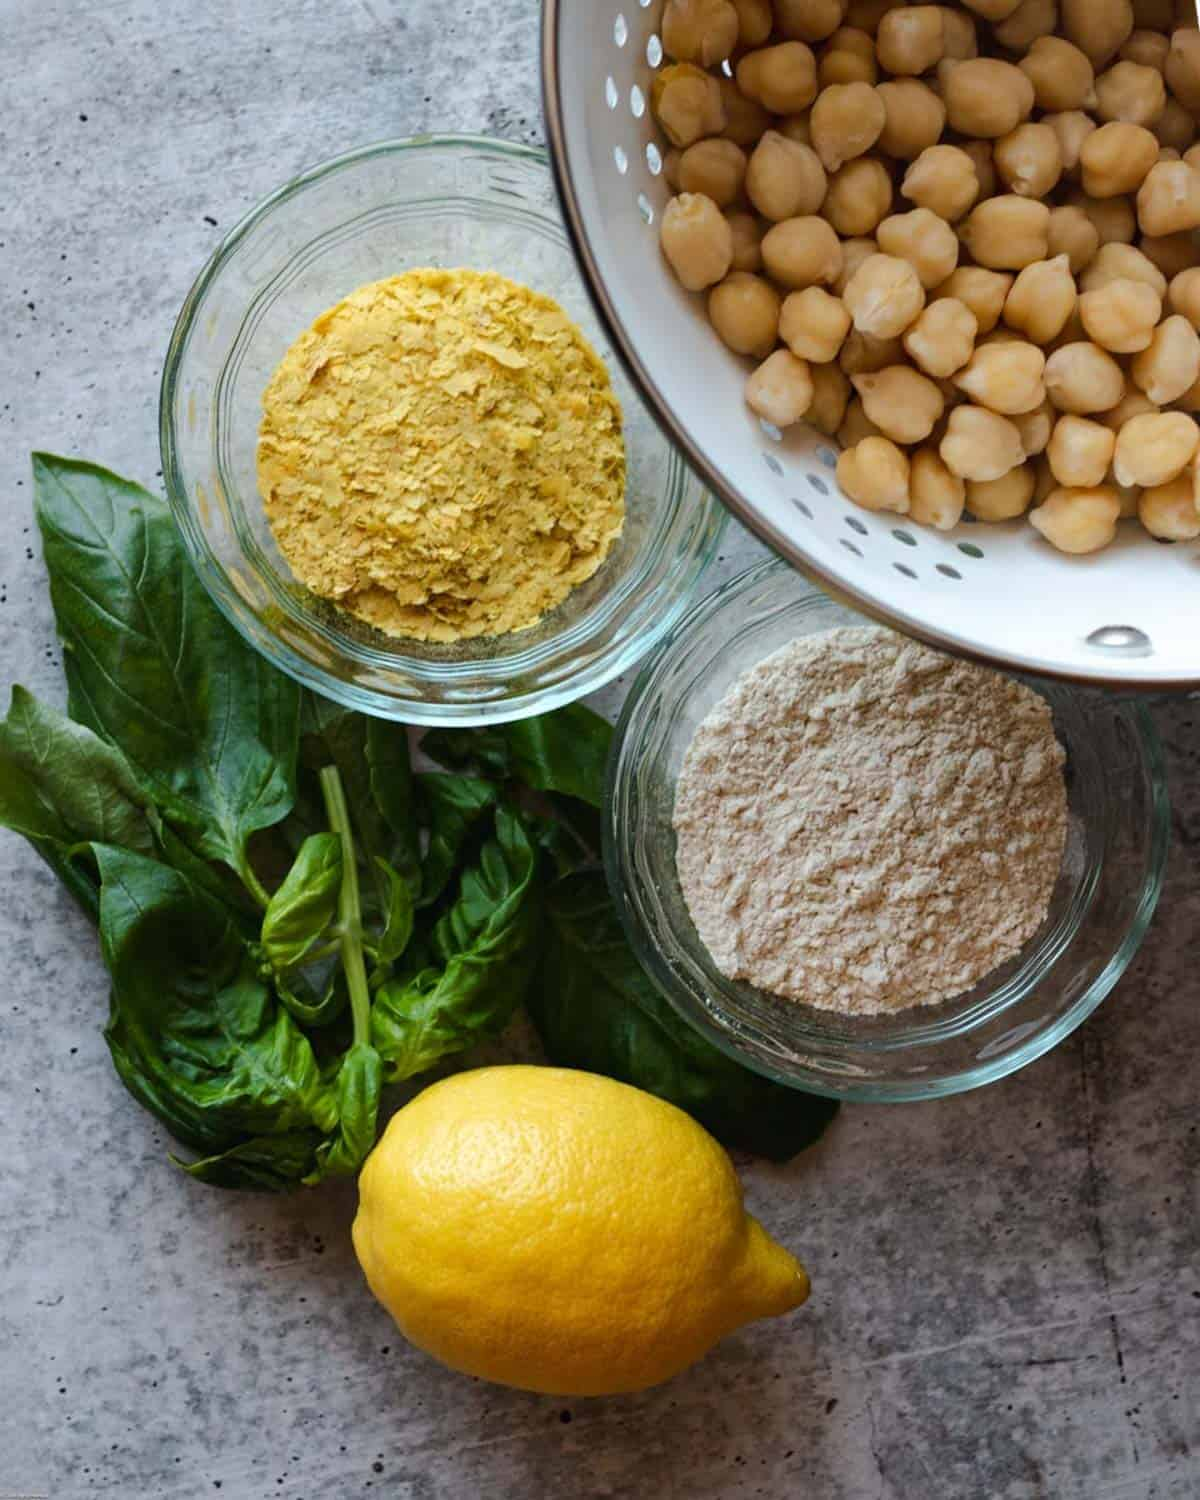 Ingredients for making the patties: lemon, basil, chickpeas, whole wheat flour, and nutritional yeast.